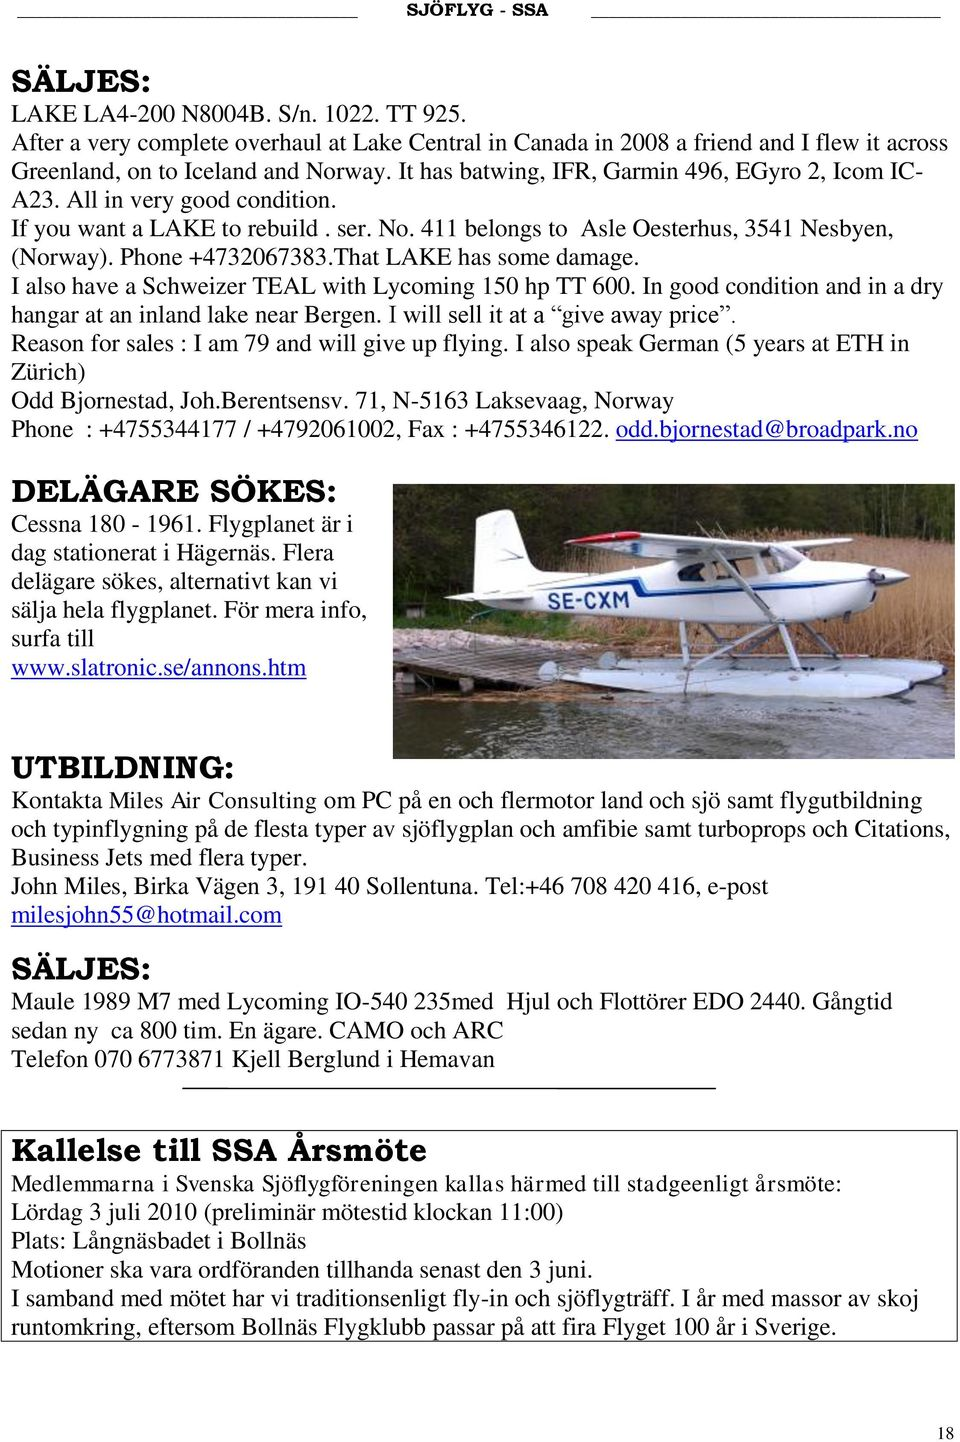 That LAKE has some damage. I also have a Schweizer TEAL with Lycoming 150 hp TT 600. In good condition and in a dry hangar at an inland lake near Bergen. I will sell it at a give away price.